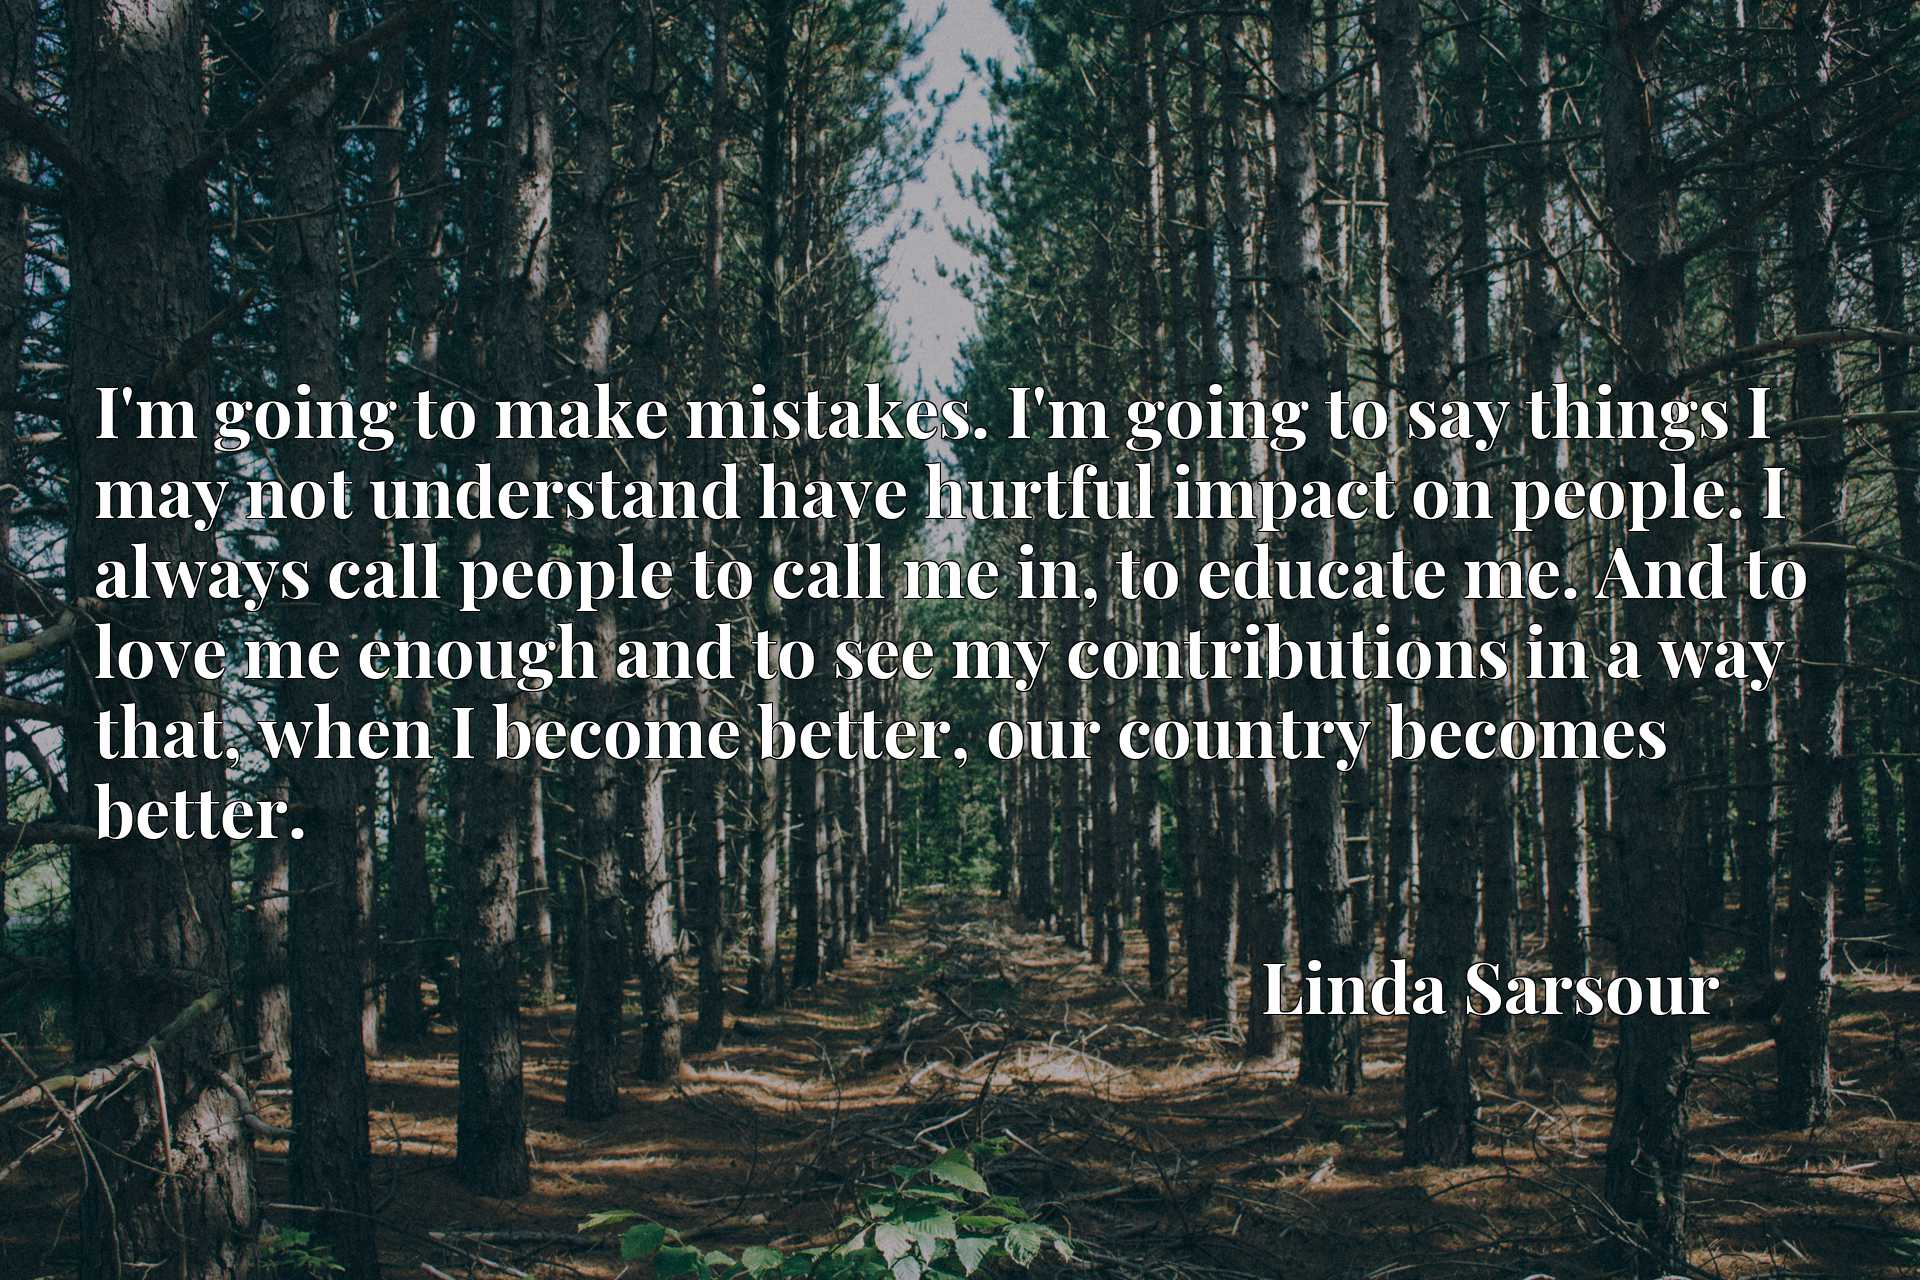 Quote Picture :I'm going to make mistakes. I'm going to say things I may not understand have hurtful impact on people. I always call people to call me in, to educate me. And to love me enough and to see my contributions in a way that, when I become better, our country becomes better.